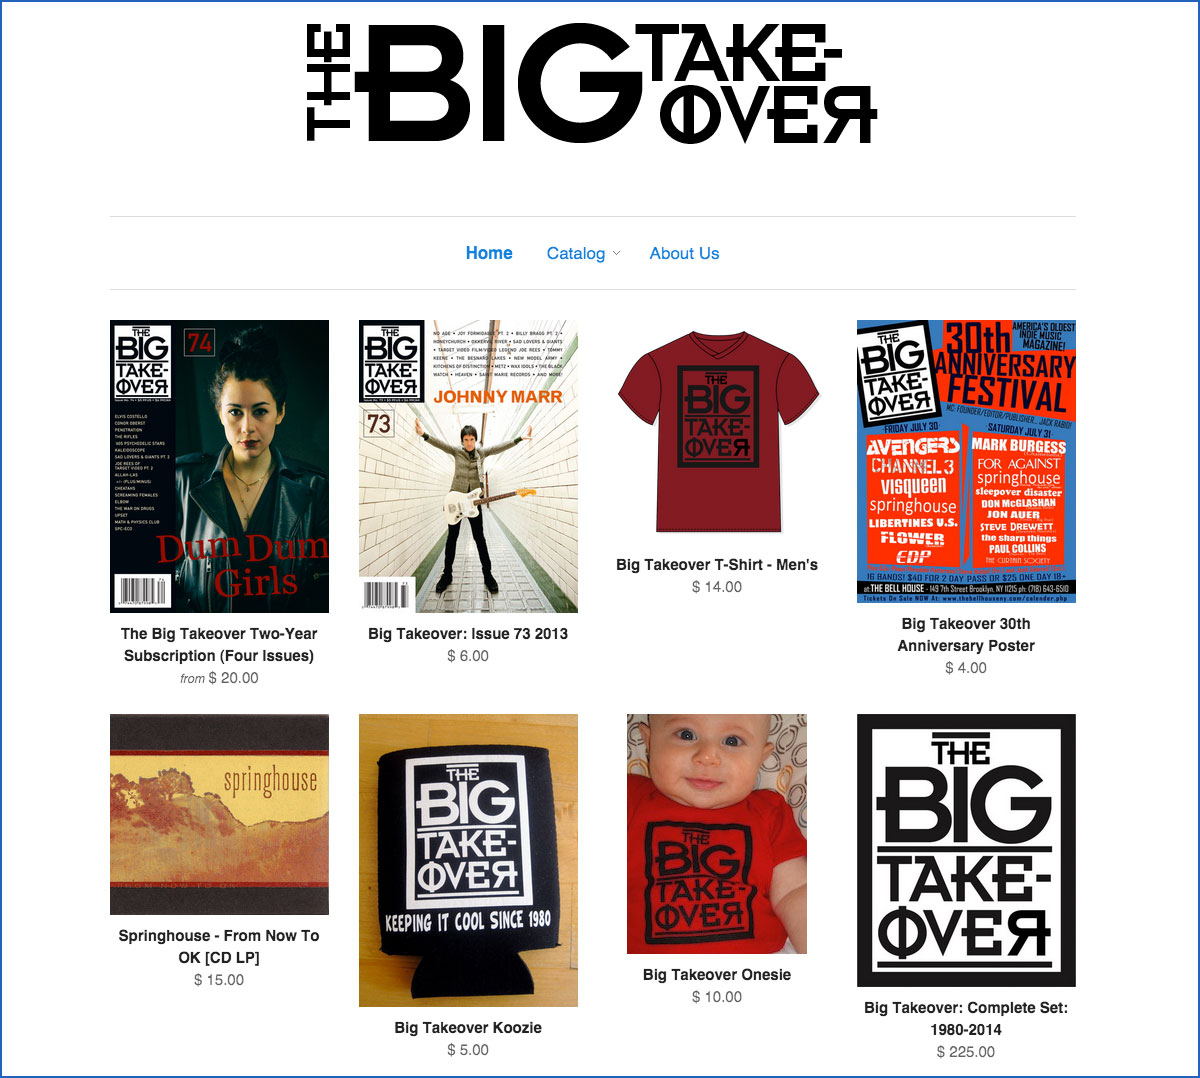 The Big Takeover Store